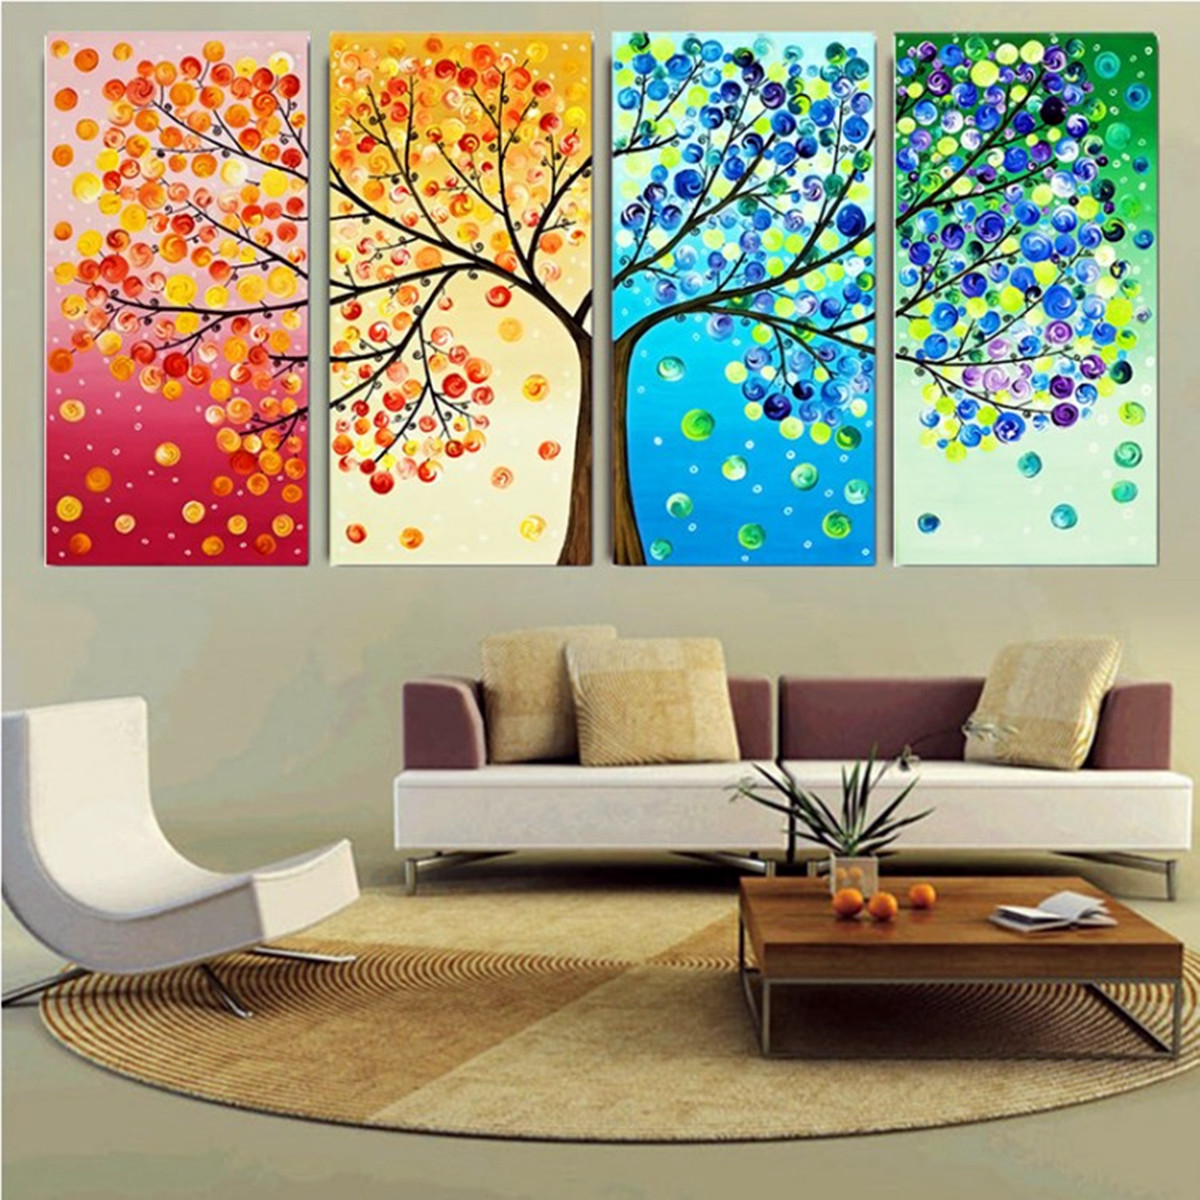 Diy handmade colorful season tree counted cross stitch for Www decorations home